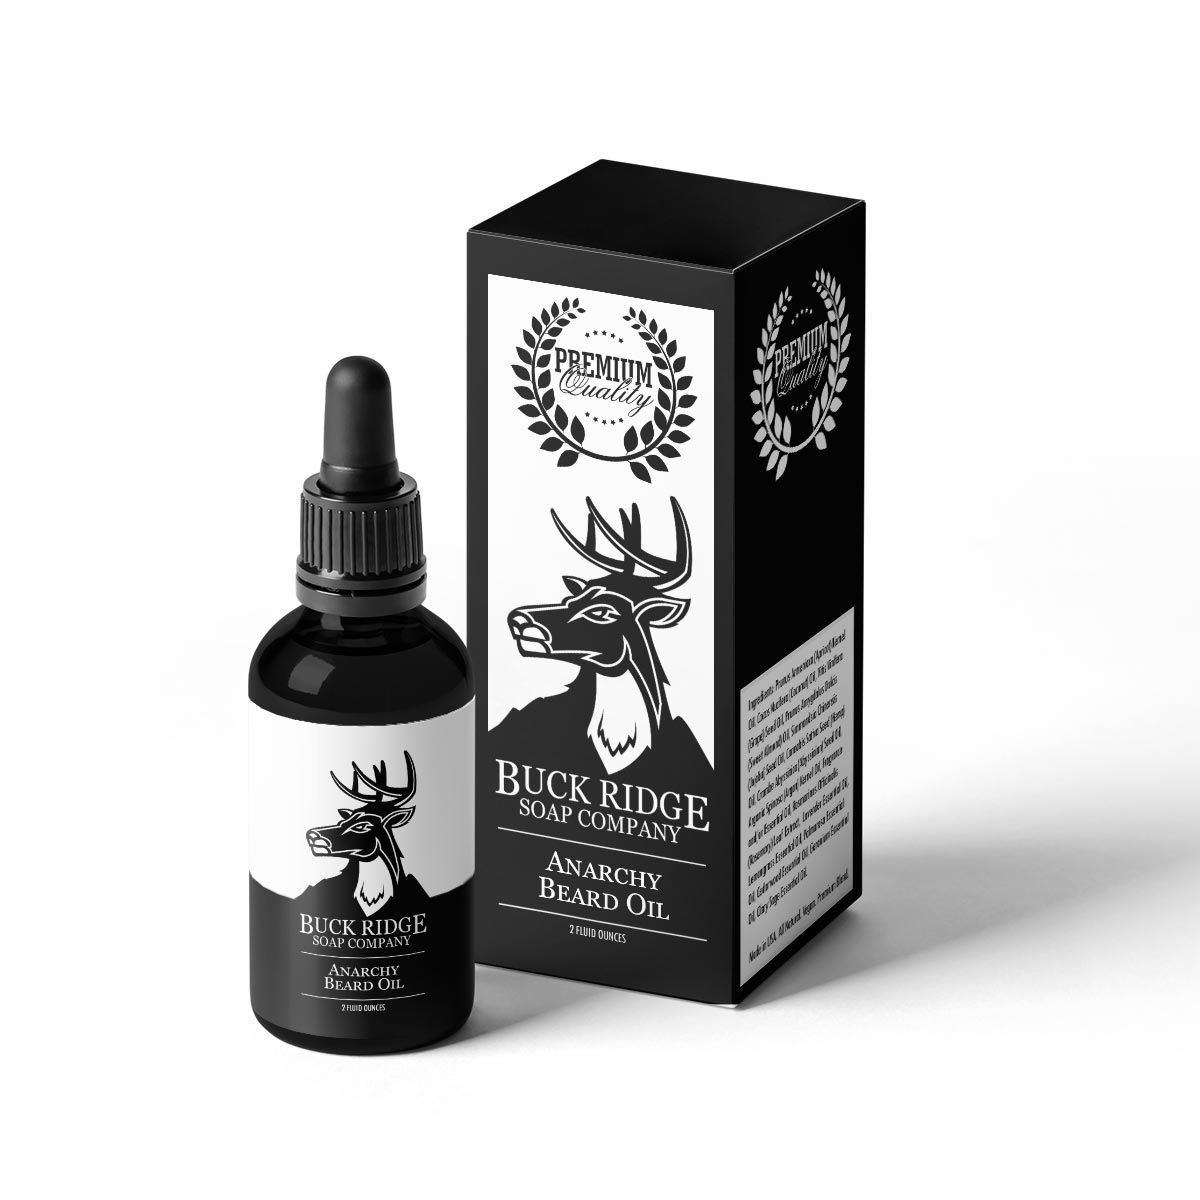 Anarchy Men's Natural Beard Oils by Buck Ridge Soap Co.